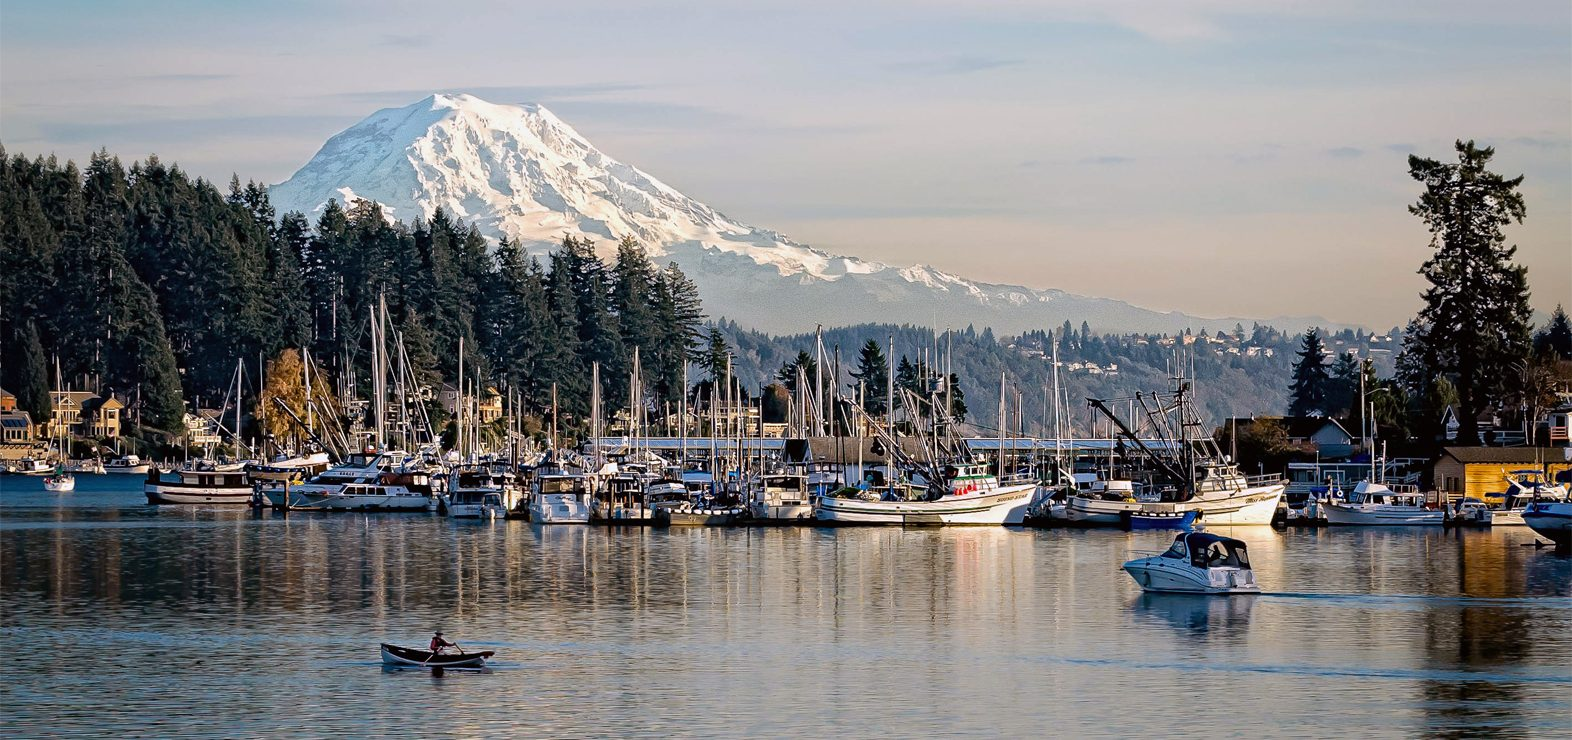 View of Mount Rainier and Gig Harbor Bay